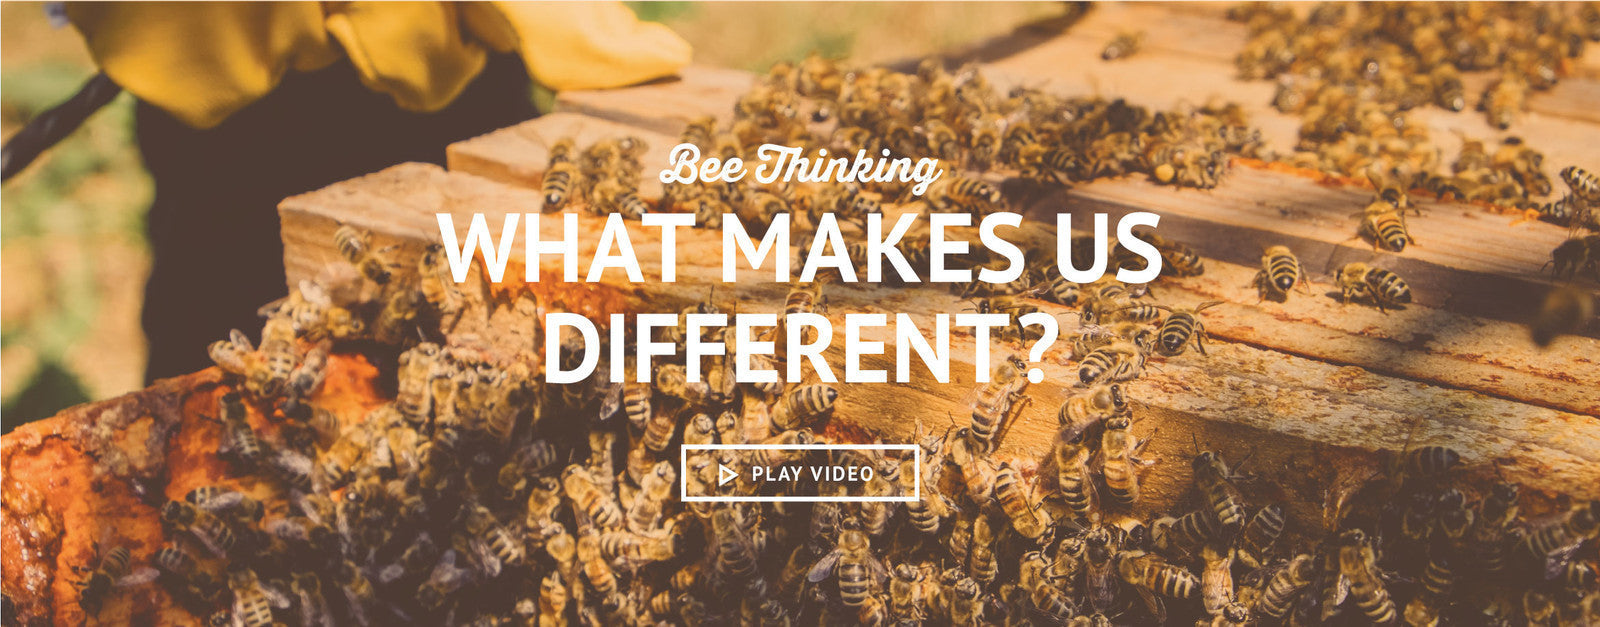 what makes bee thinking different